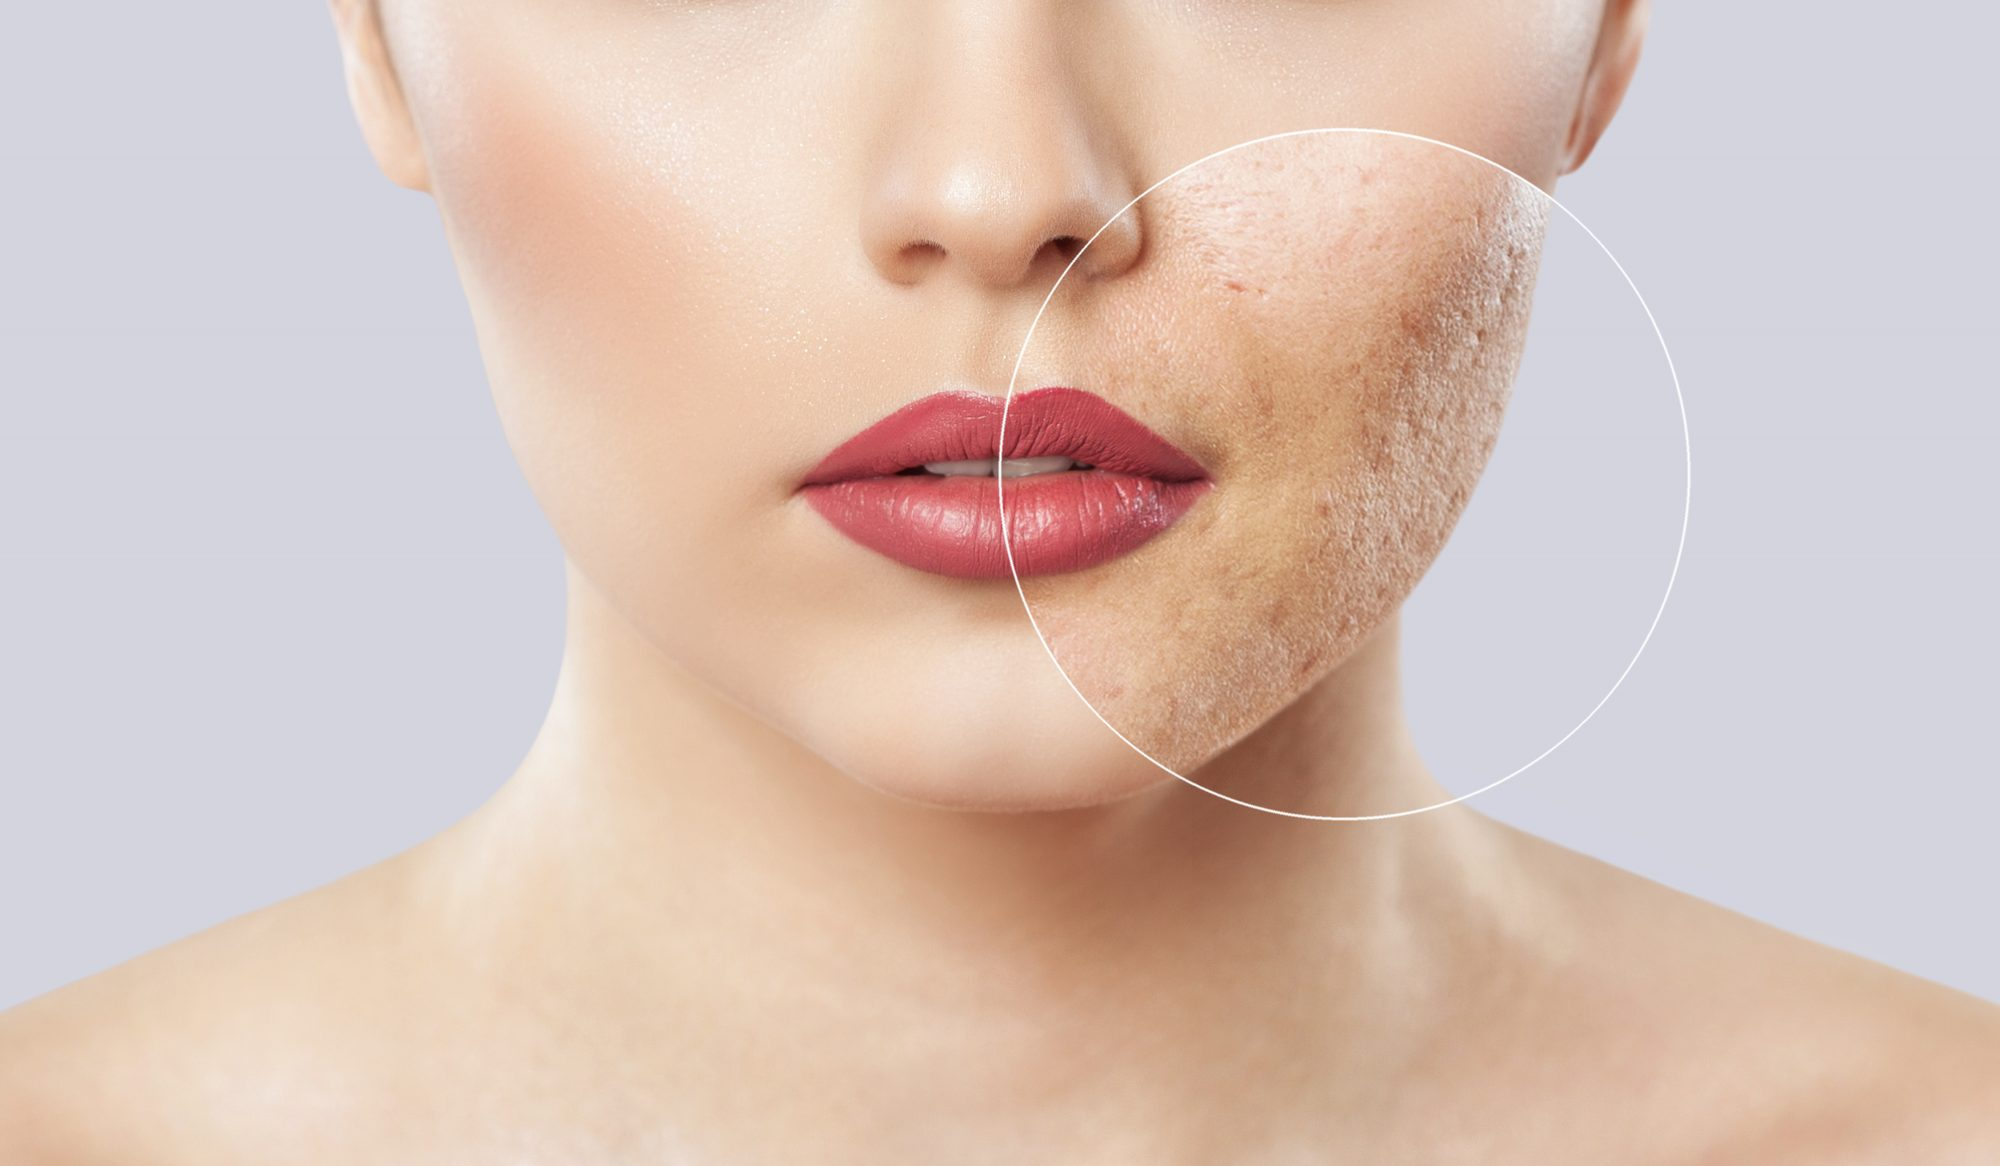 How can I fight acne scars